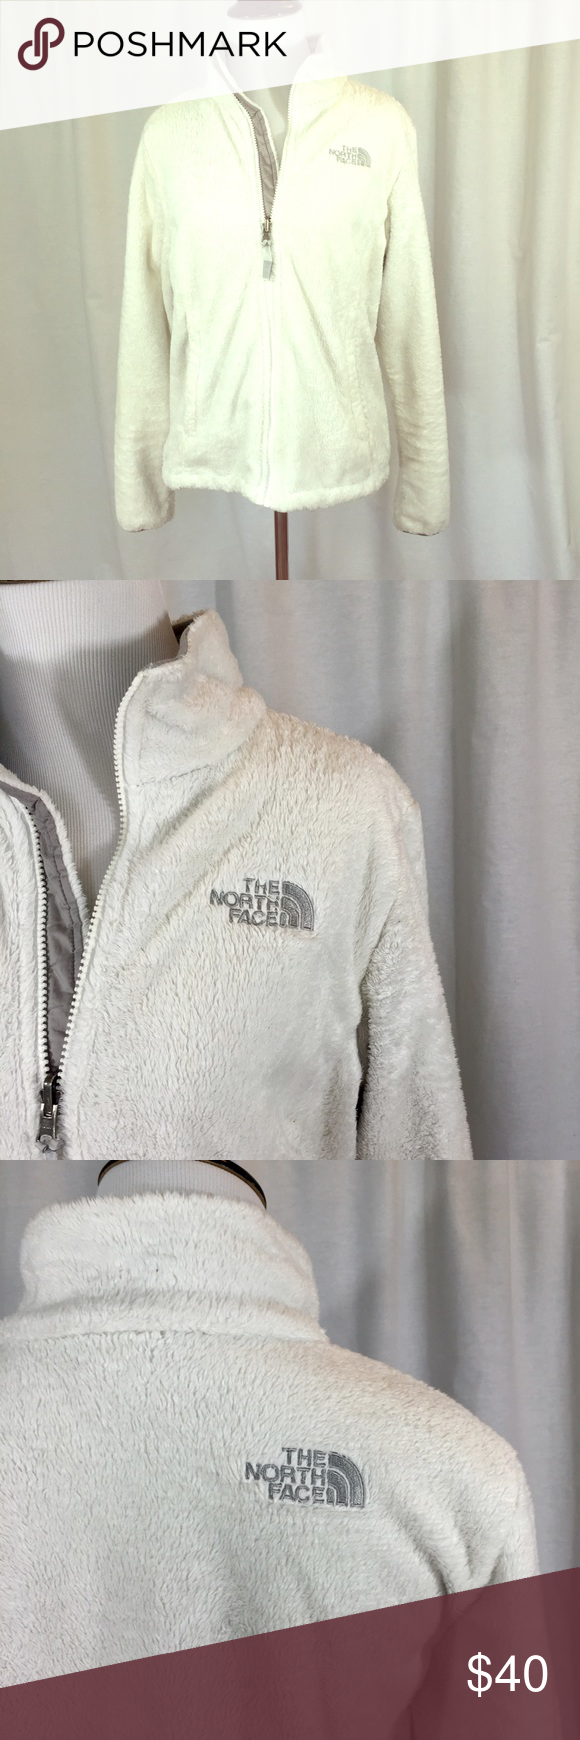 The North Face // Osito Jacket White Fleece Super soft, deep-pile polyester fleece makes this lightweight North Face jacket warm and cozy. Zipper pockets. Elastic at sleeve cuffs. Adjustable hem. Relaxed fit. Good condition, some pilling at hips (shown in last photo), cuffs, and inside pockets. trades smoke free home The North Face Jackets & Coats